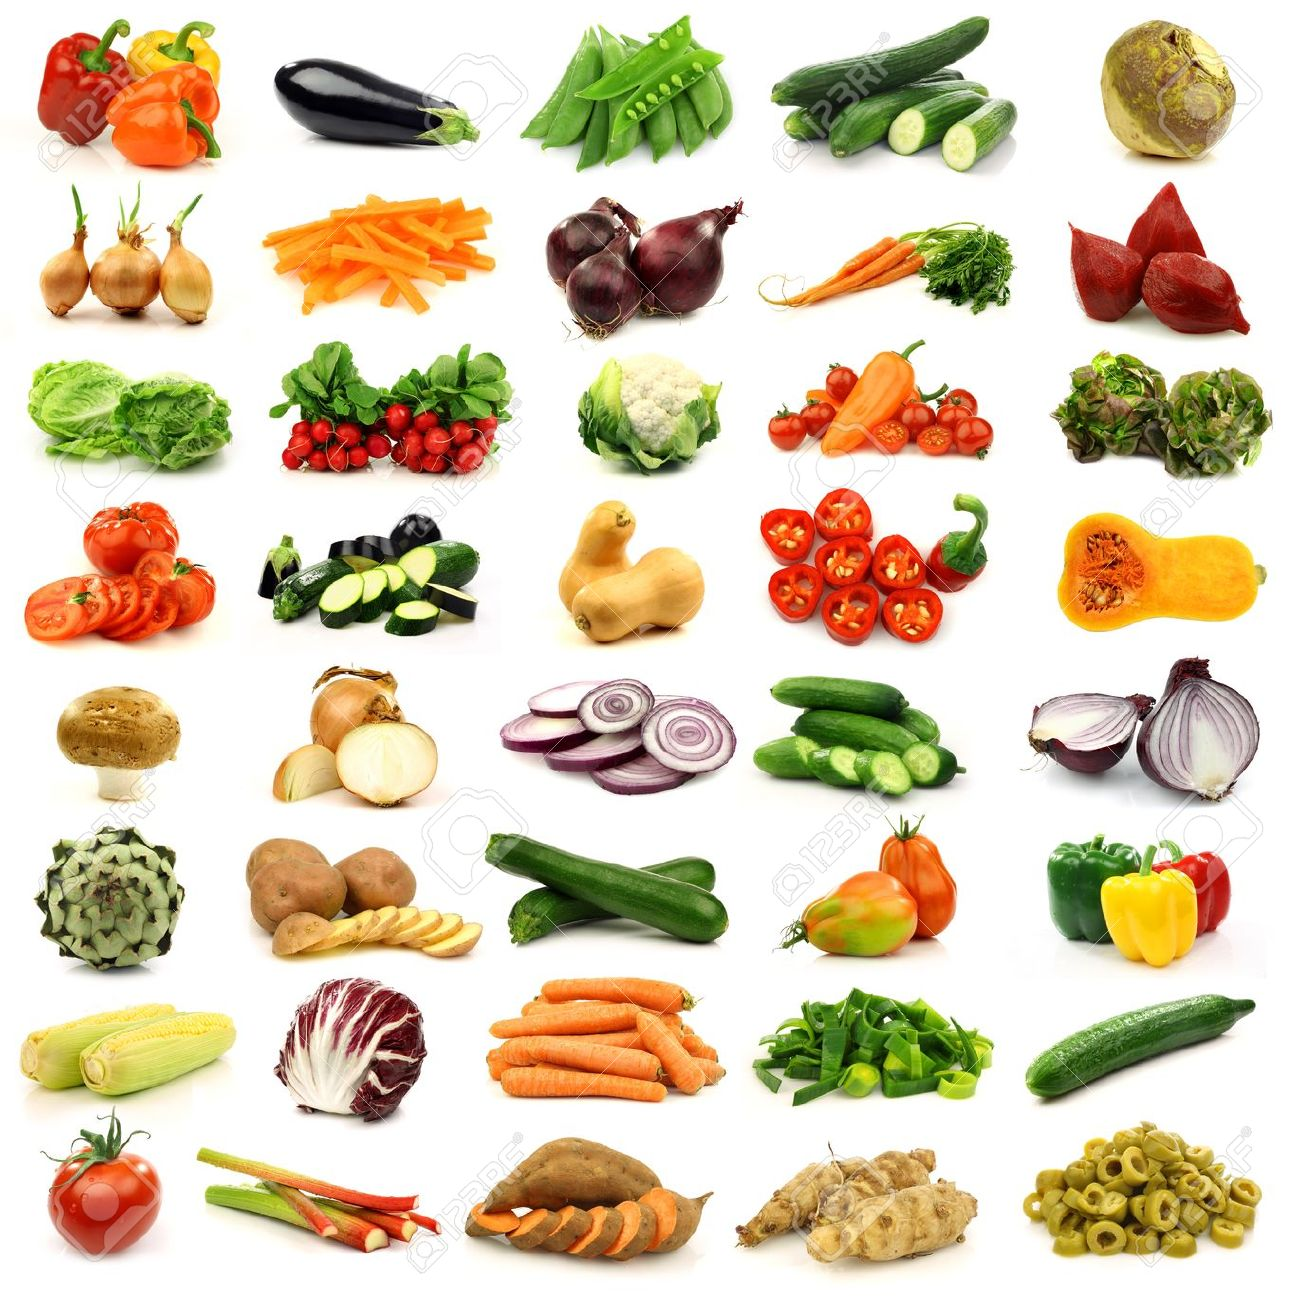 8 kinds of poisonous vegetables if they are not cooked